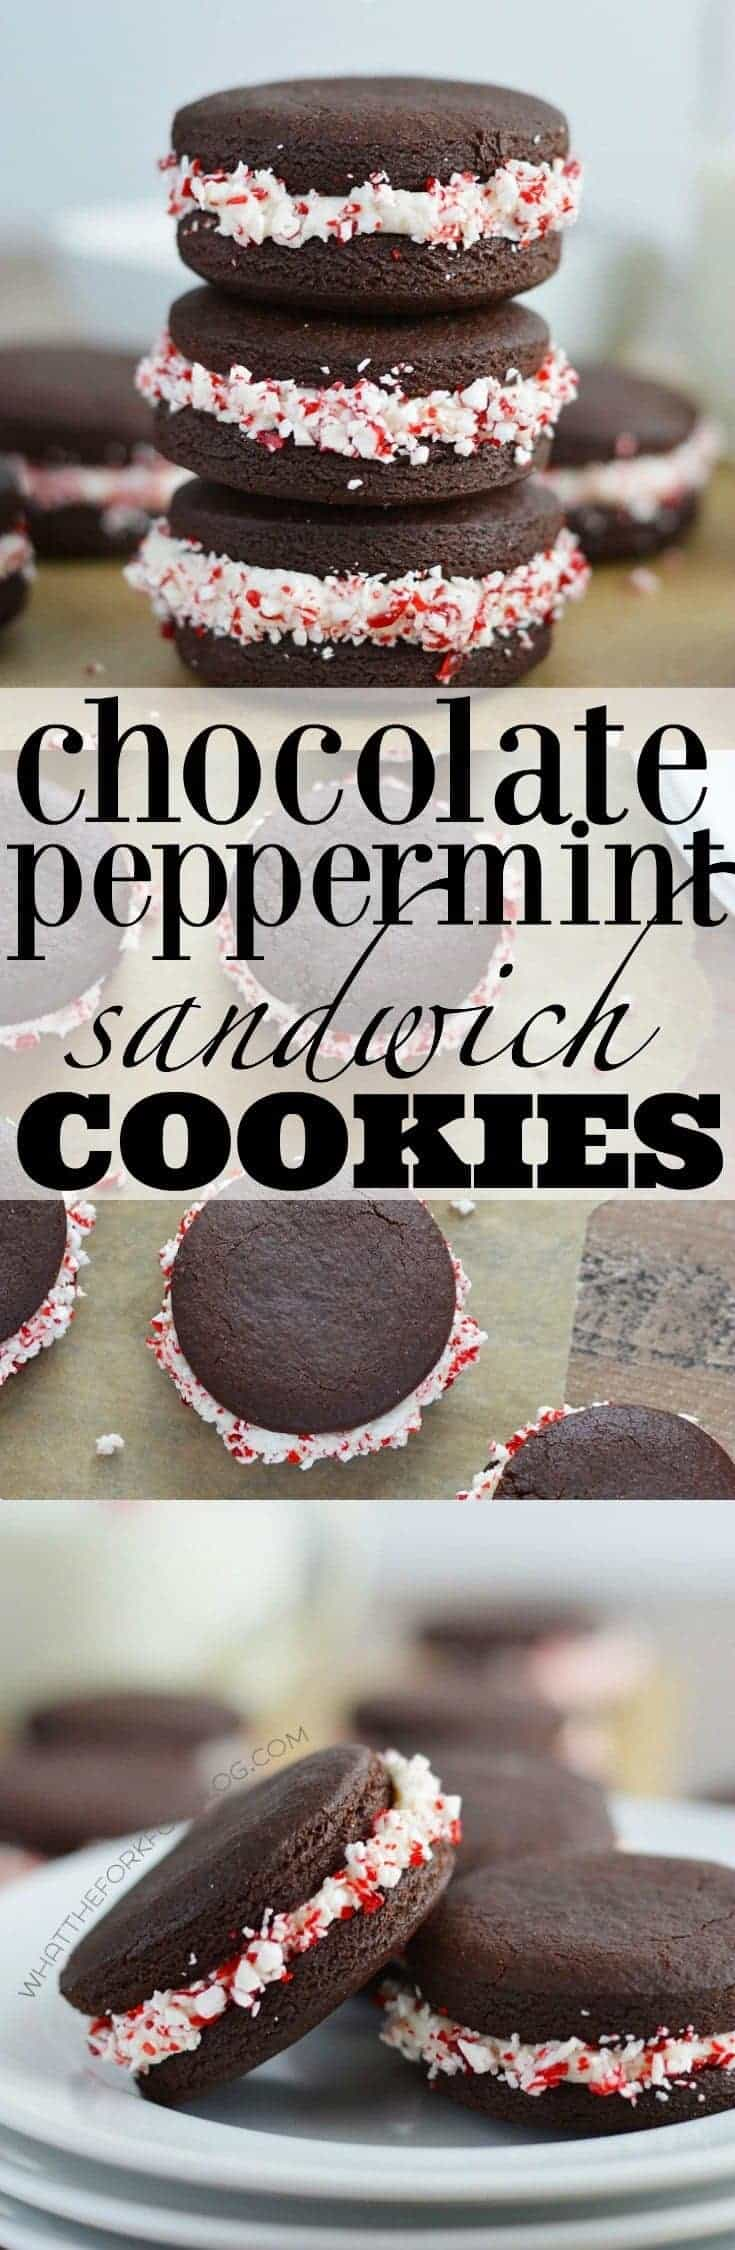 Chocolate Peppermint Sandwich Cookies (gluten free and dairy free) from What The Fork Food Blog   whattheforkfoodblog.com